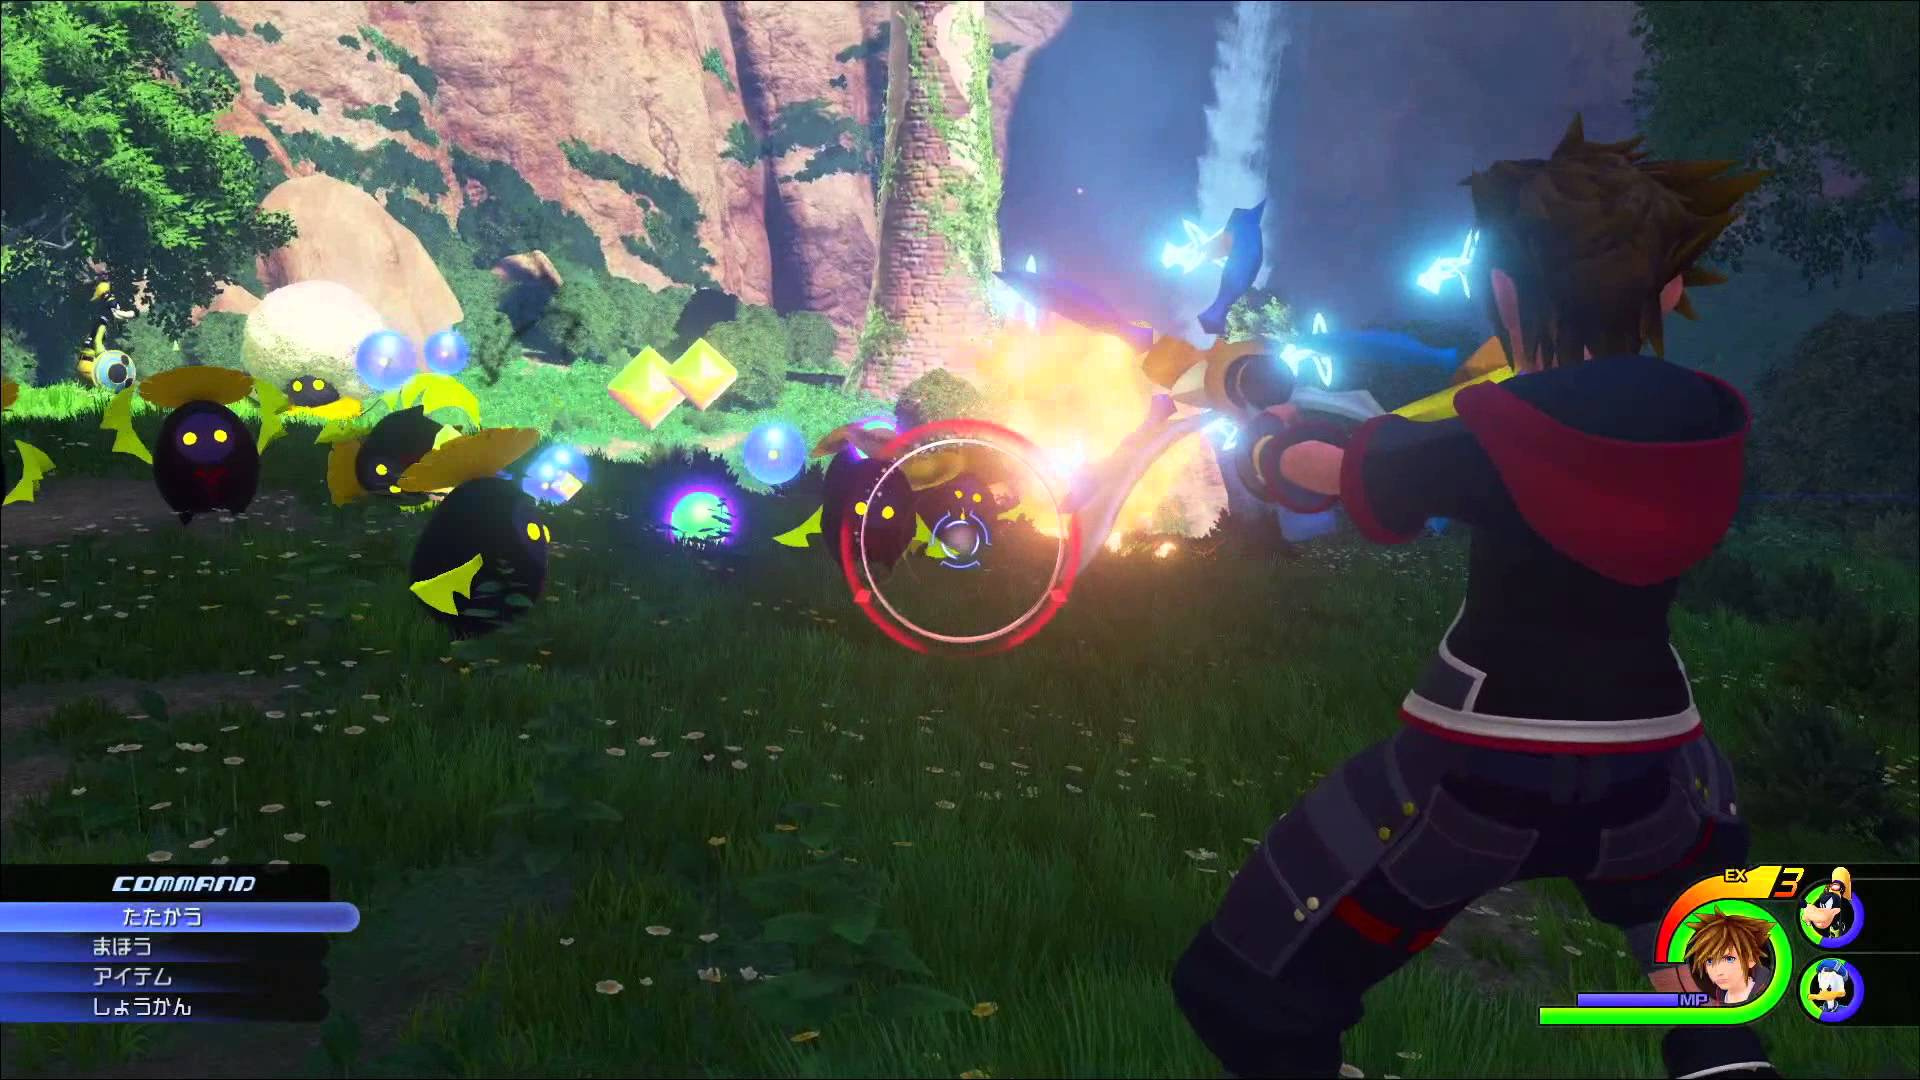 Kingdom Hearts III Trailer Released